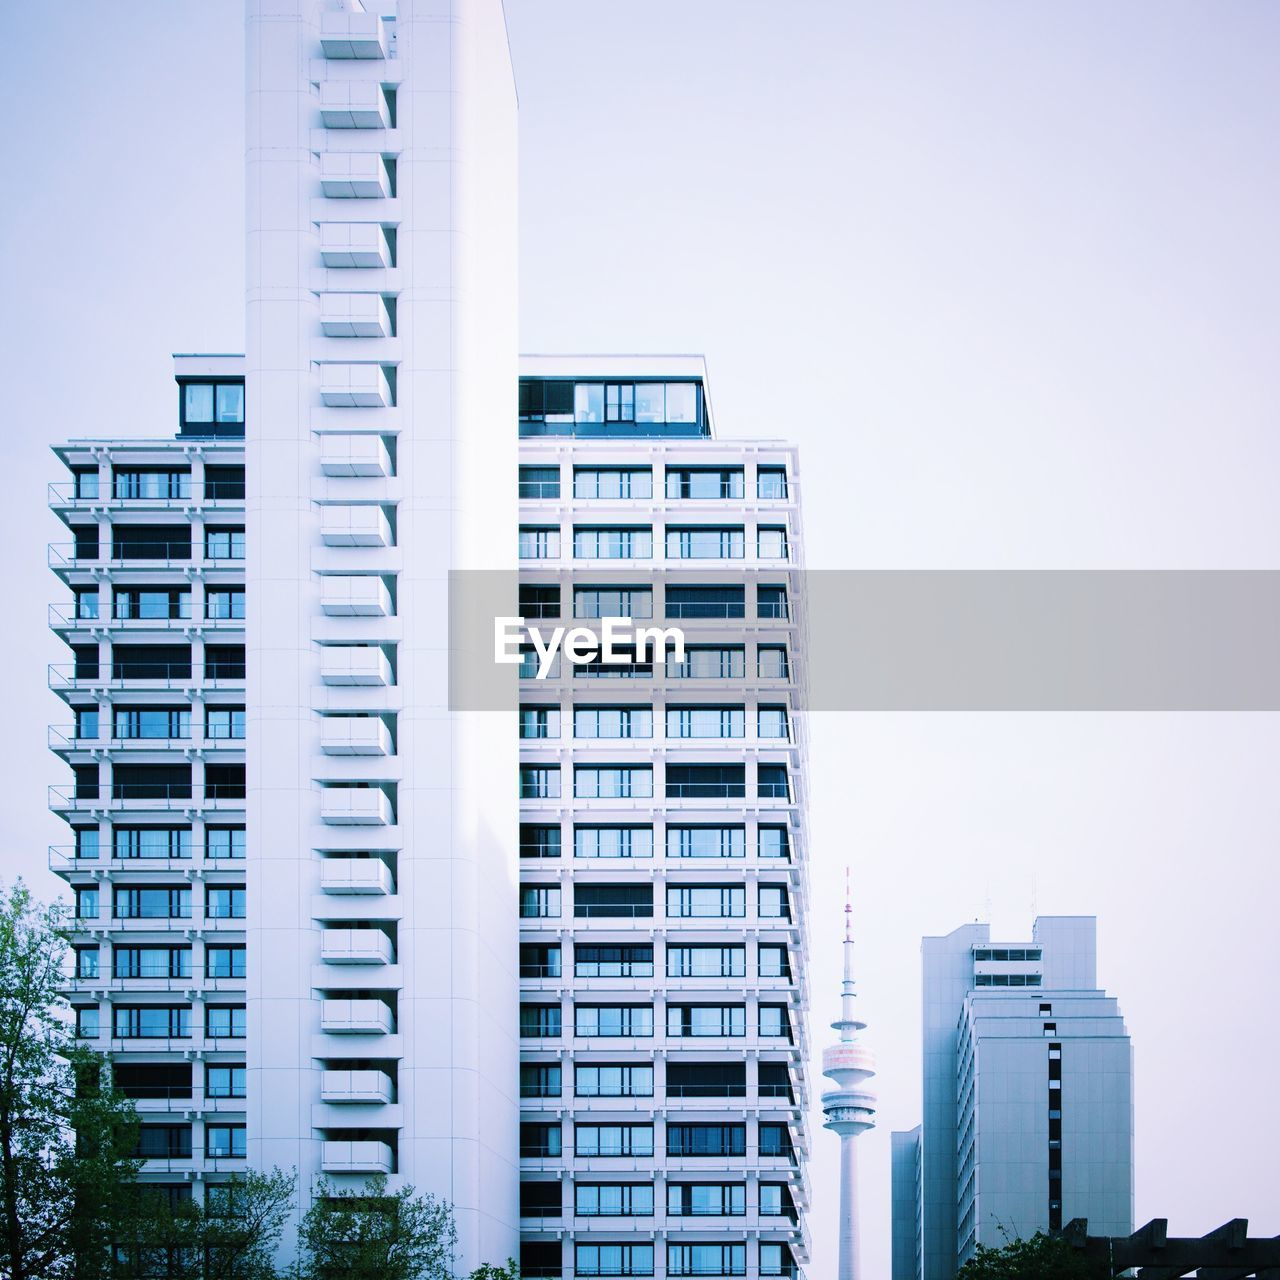 architecture, building exterior, built structure, skyscraper, modern, city, outdoors, low angle view, day, clear sky, no people, sky